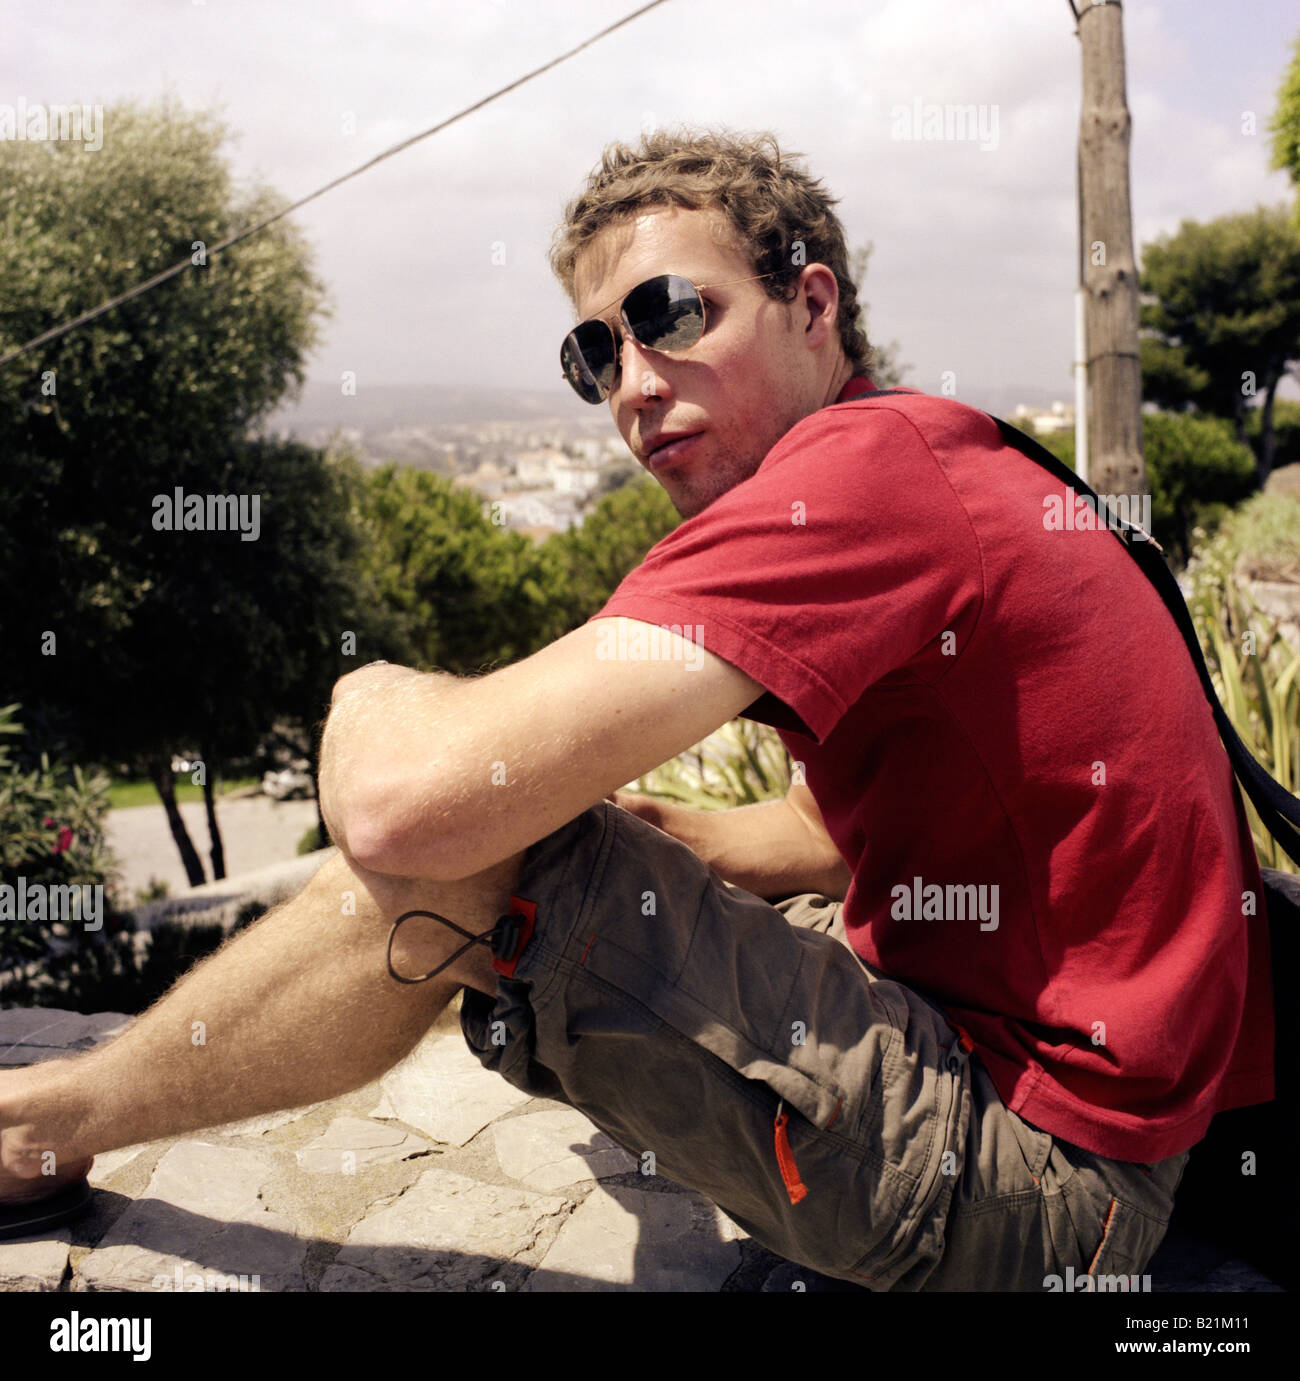 Gap year student in shorts and red tee shirt sitting on a wall looking towards the camera - Stock Image